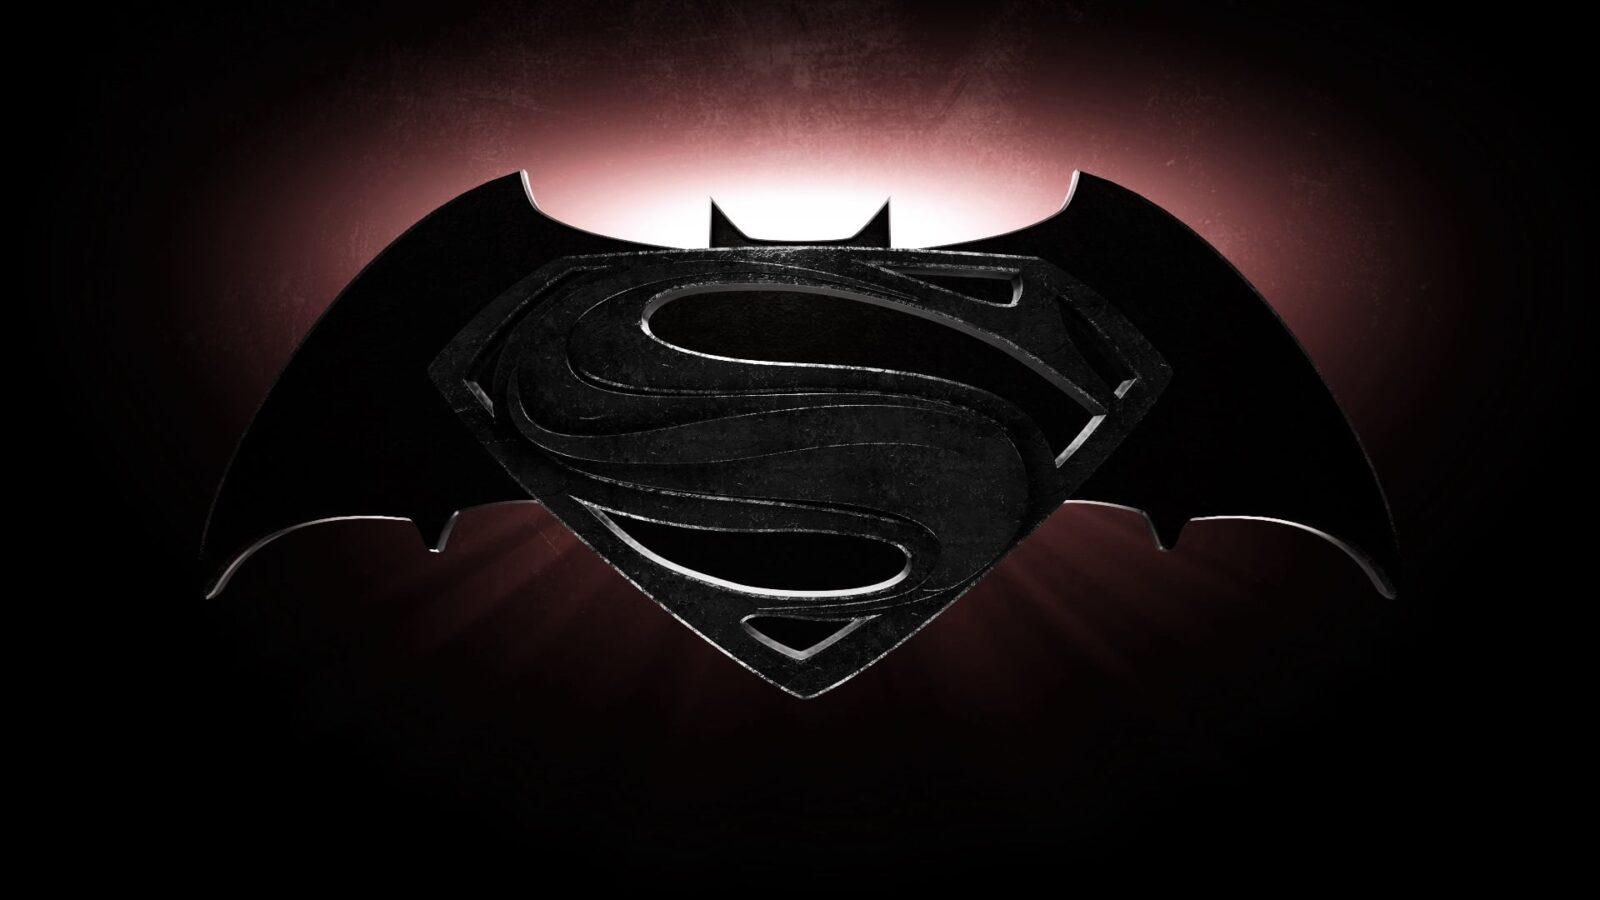 Batman vs Superman poster full HD image